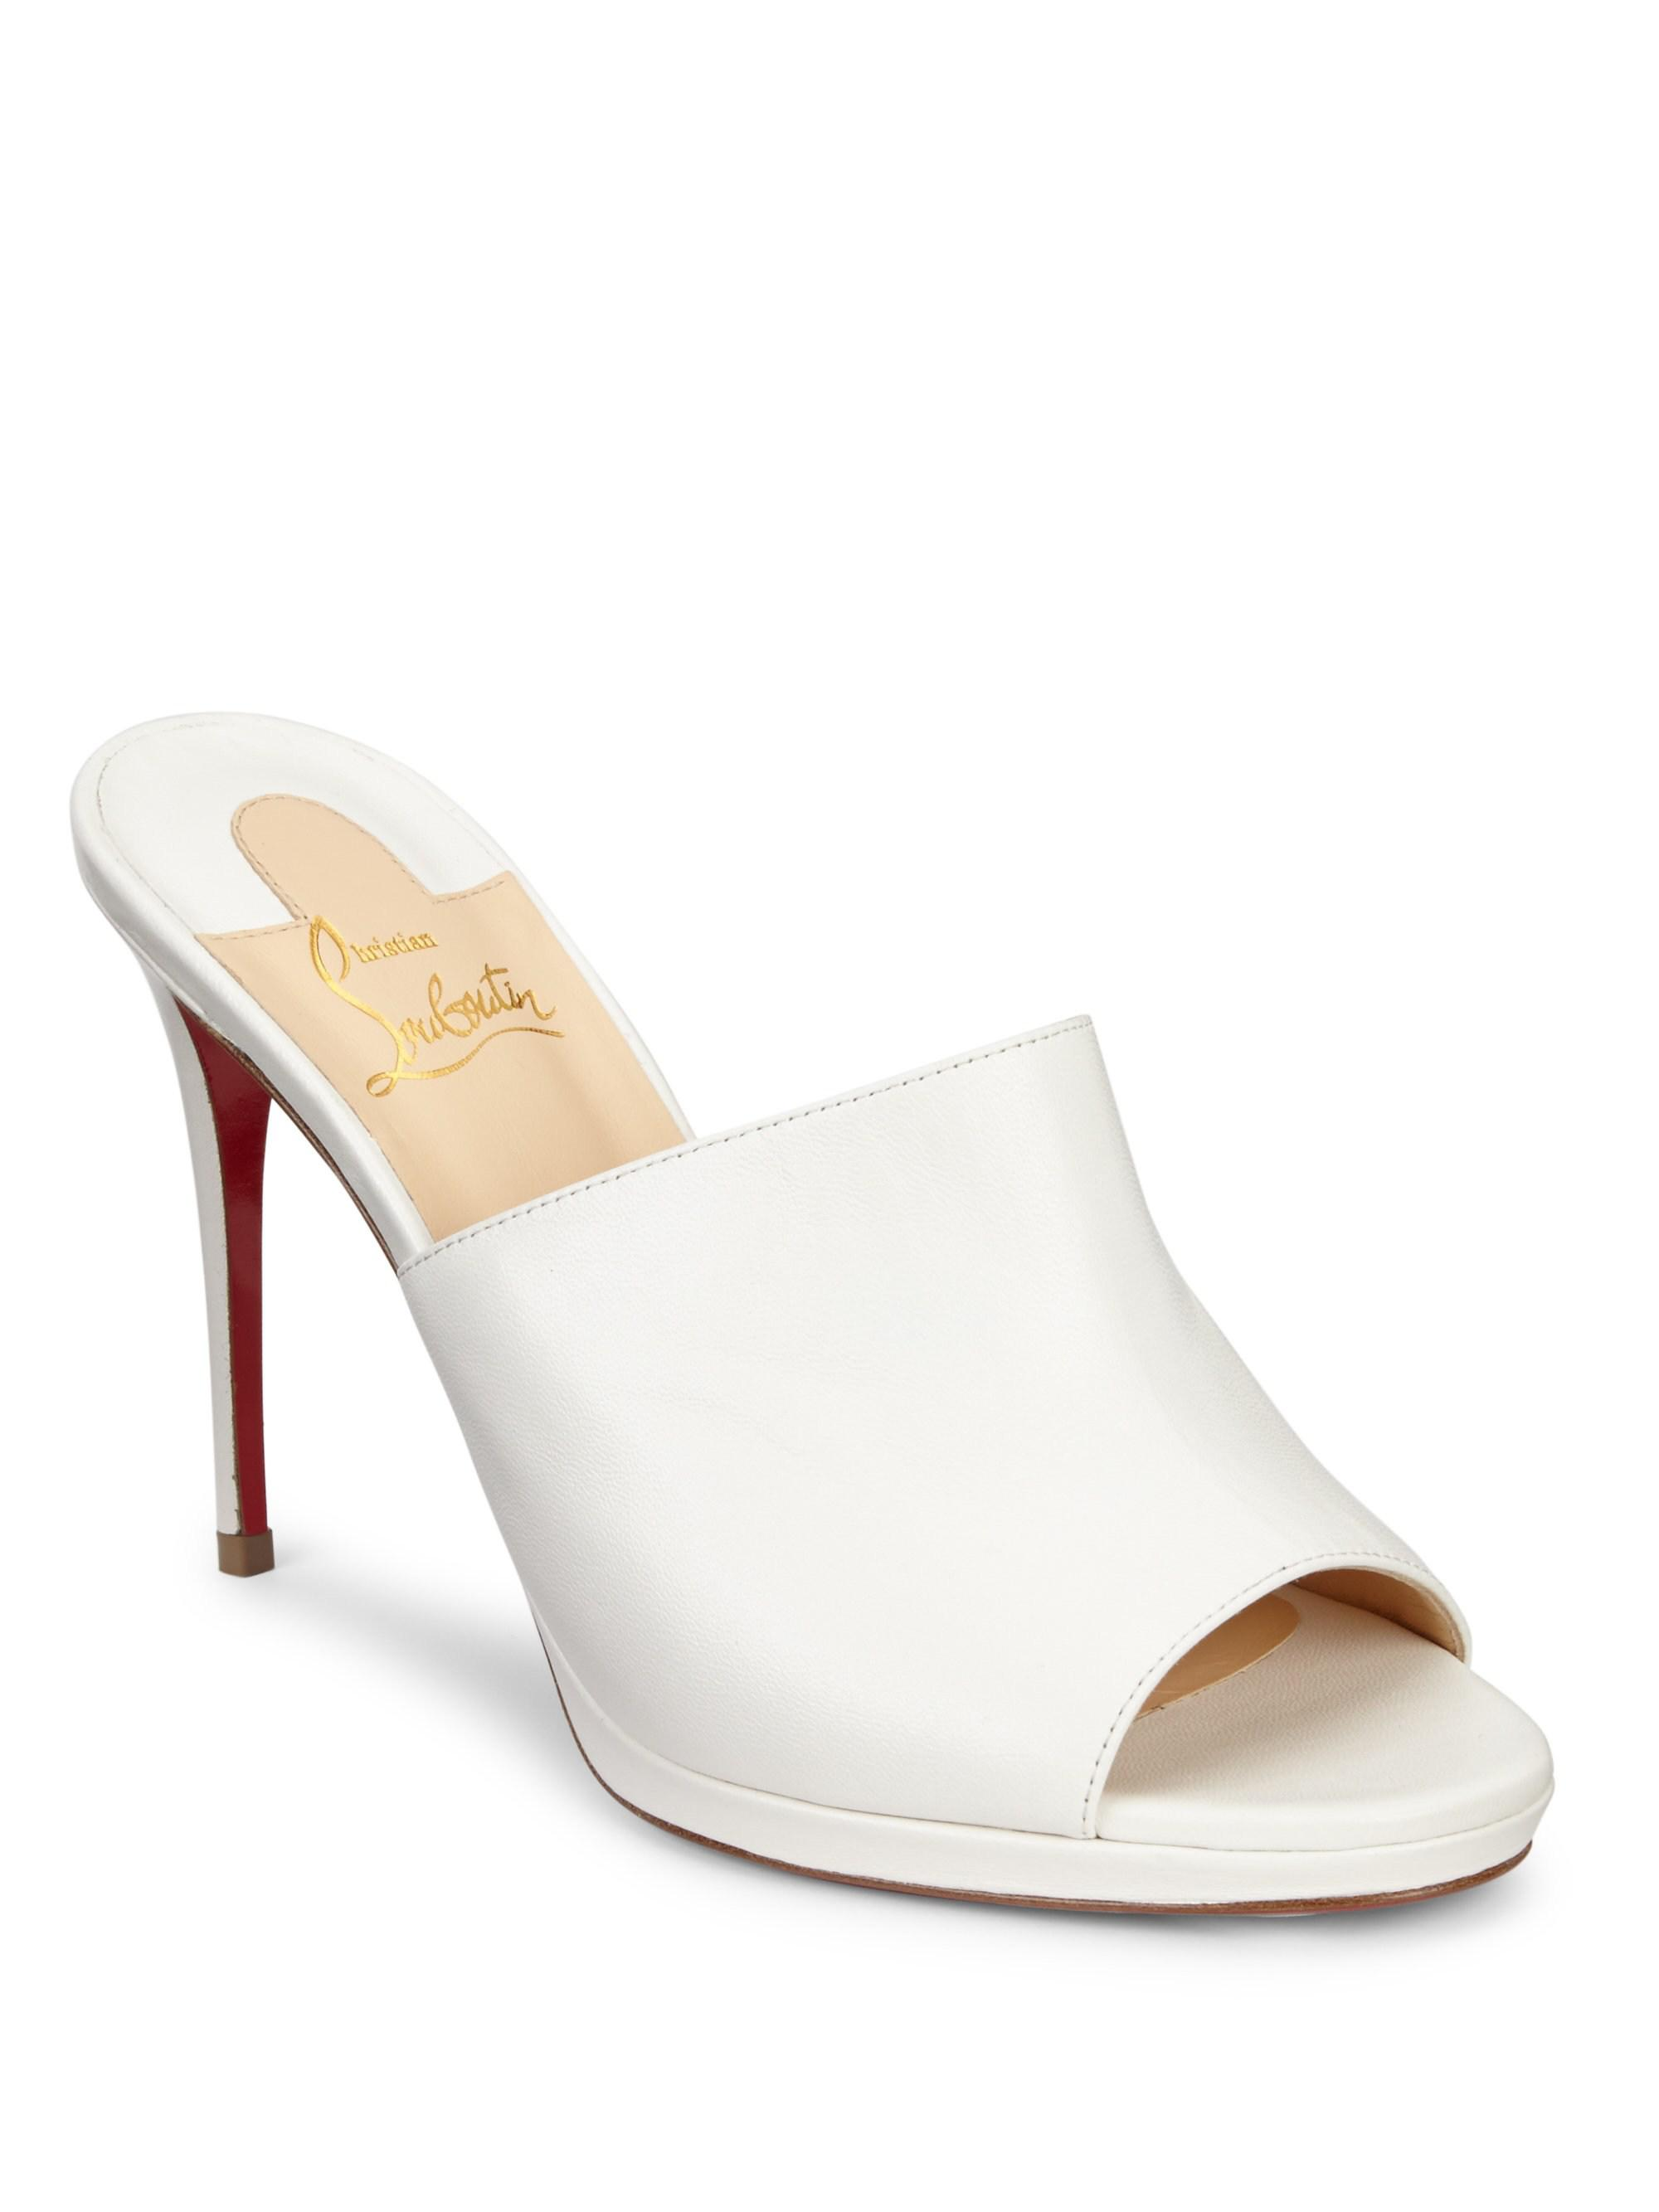 be3f9d6f888 Lyst - Christian Louboutin Pigamule 100 Leather Mules in White